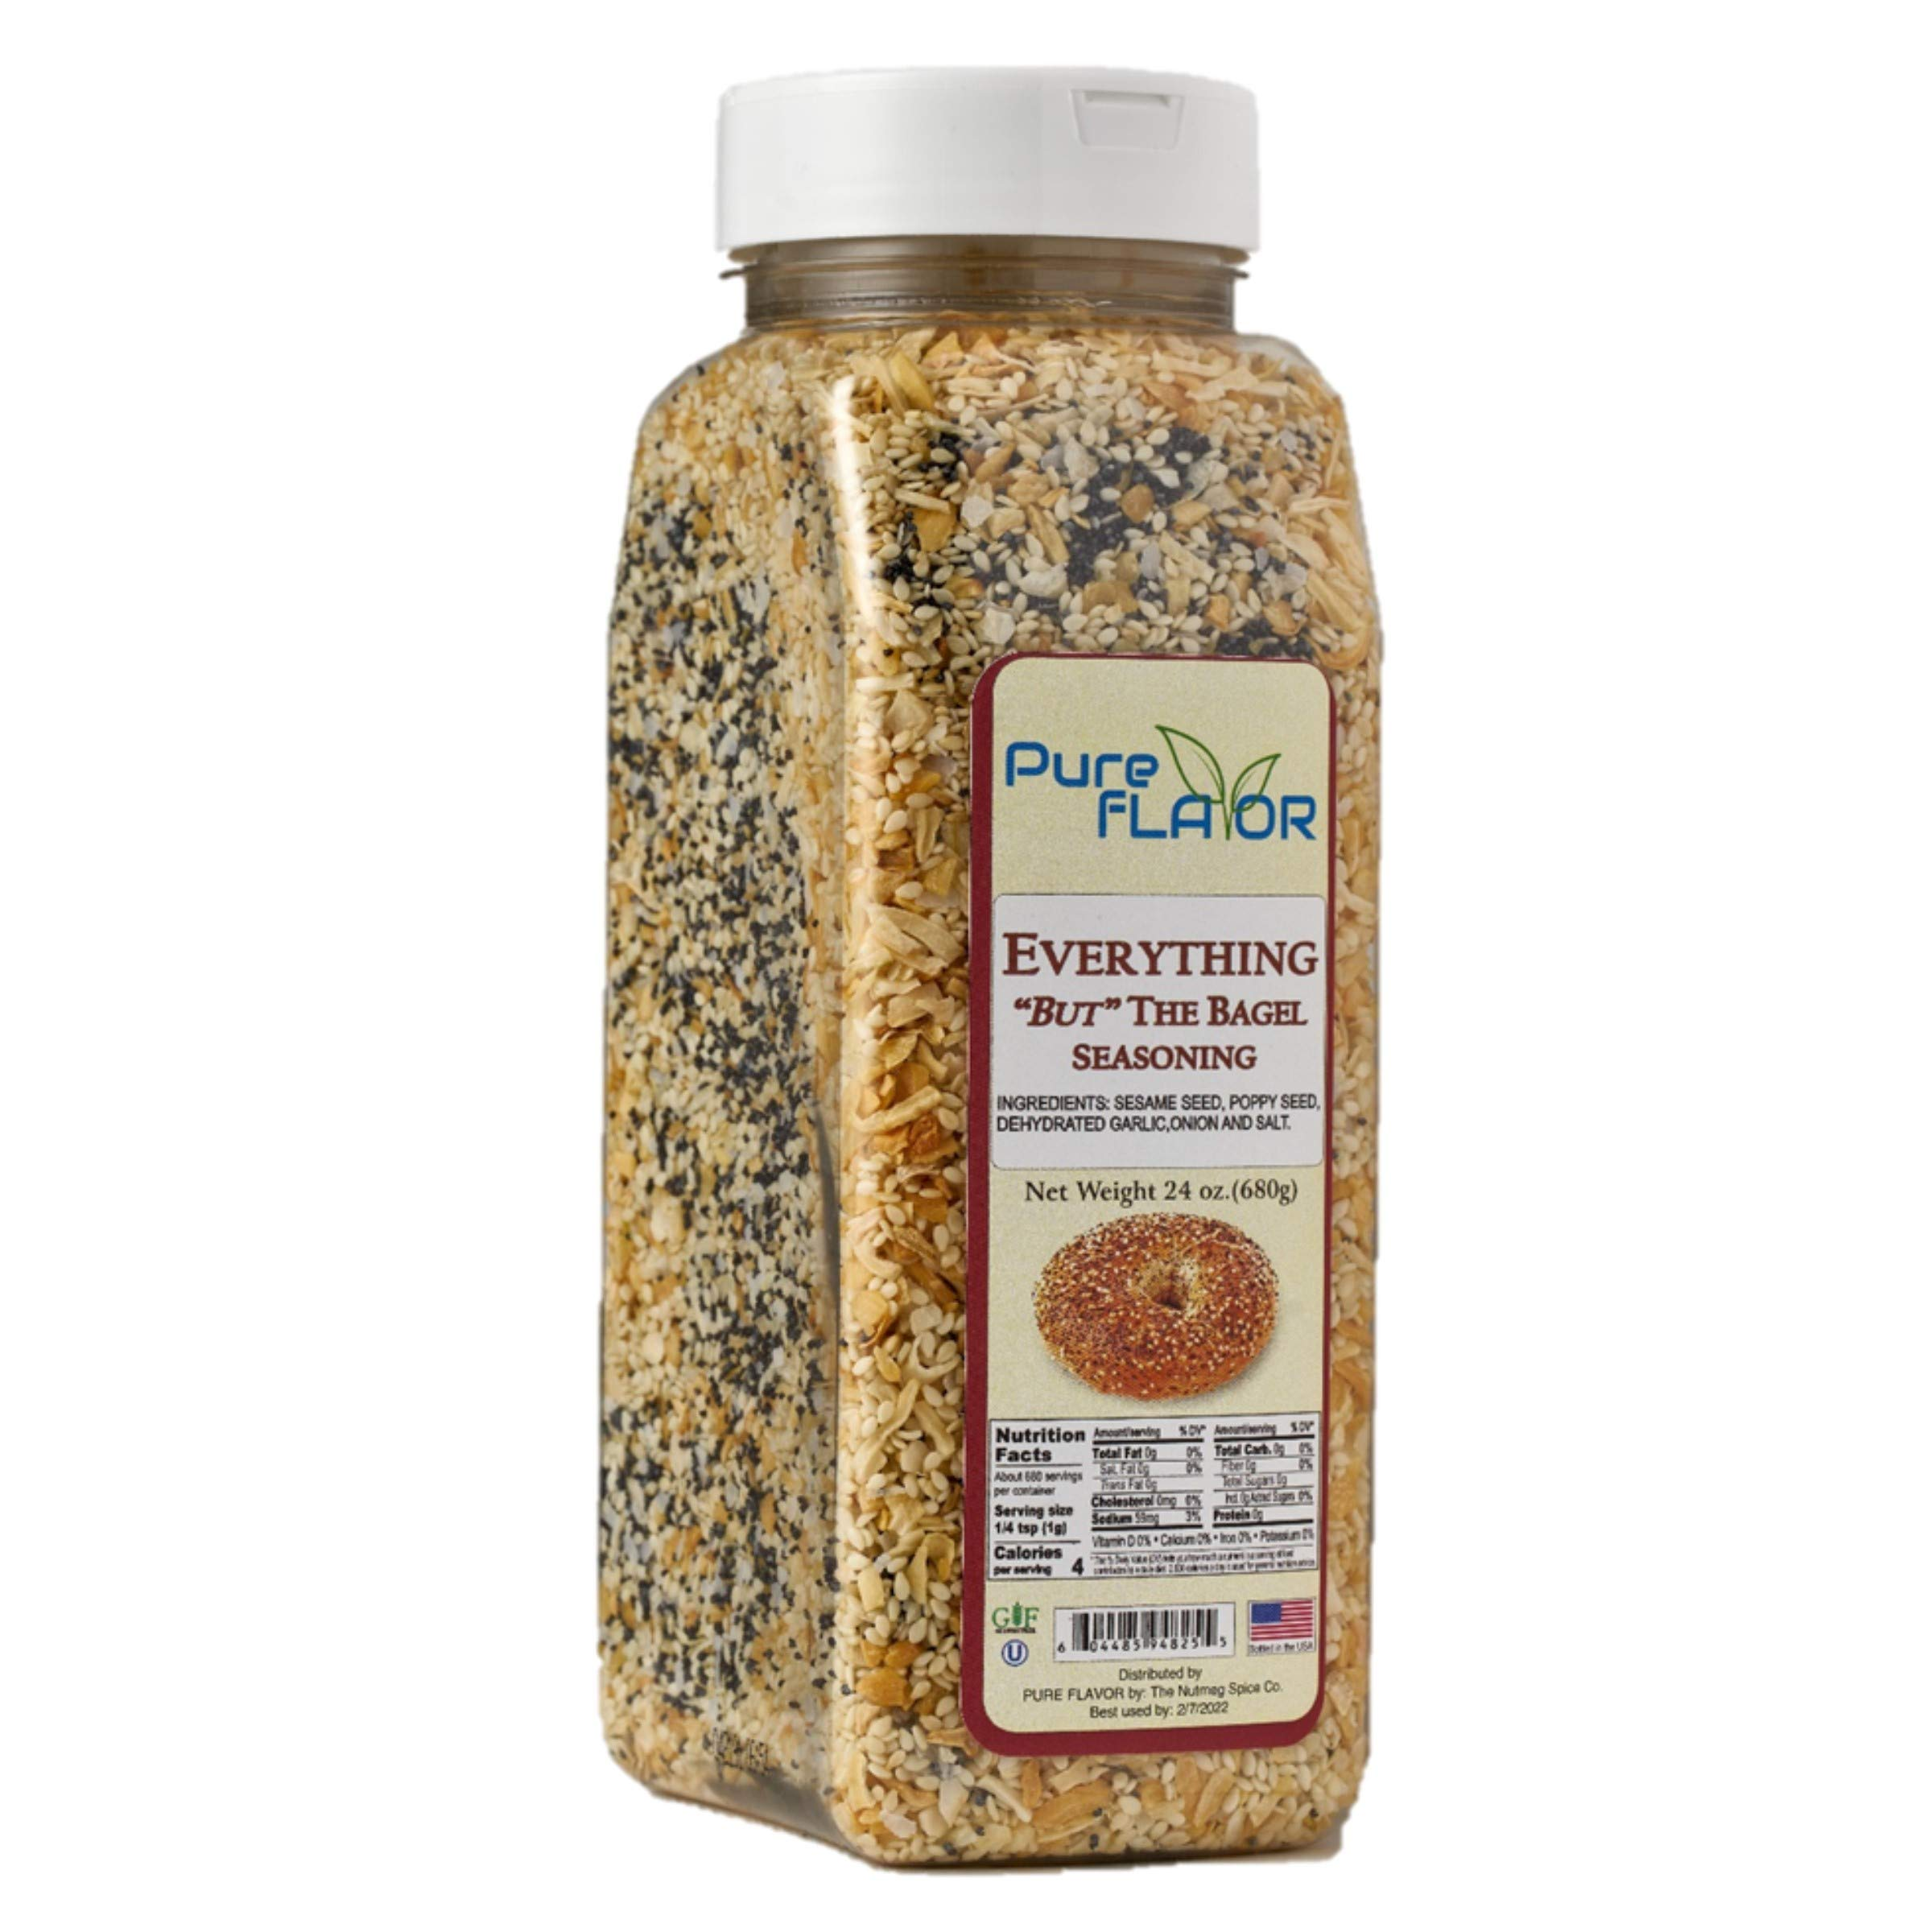 Everything Bagel Seasoning Blend, 24 oz Jar - All Natural, All Purpose Specialty Spice Mix - Sea Salt, Dried Onion, Poppy Seeds, Sesame, Garlic Powder and More